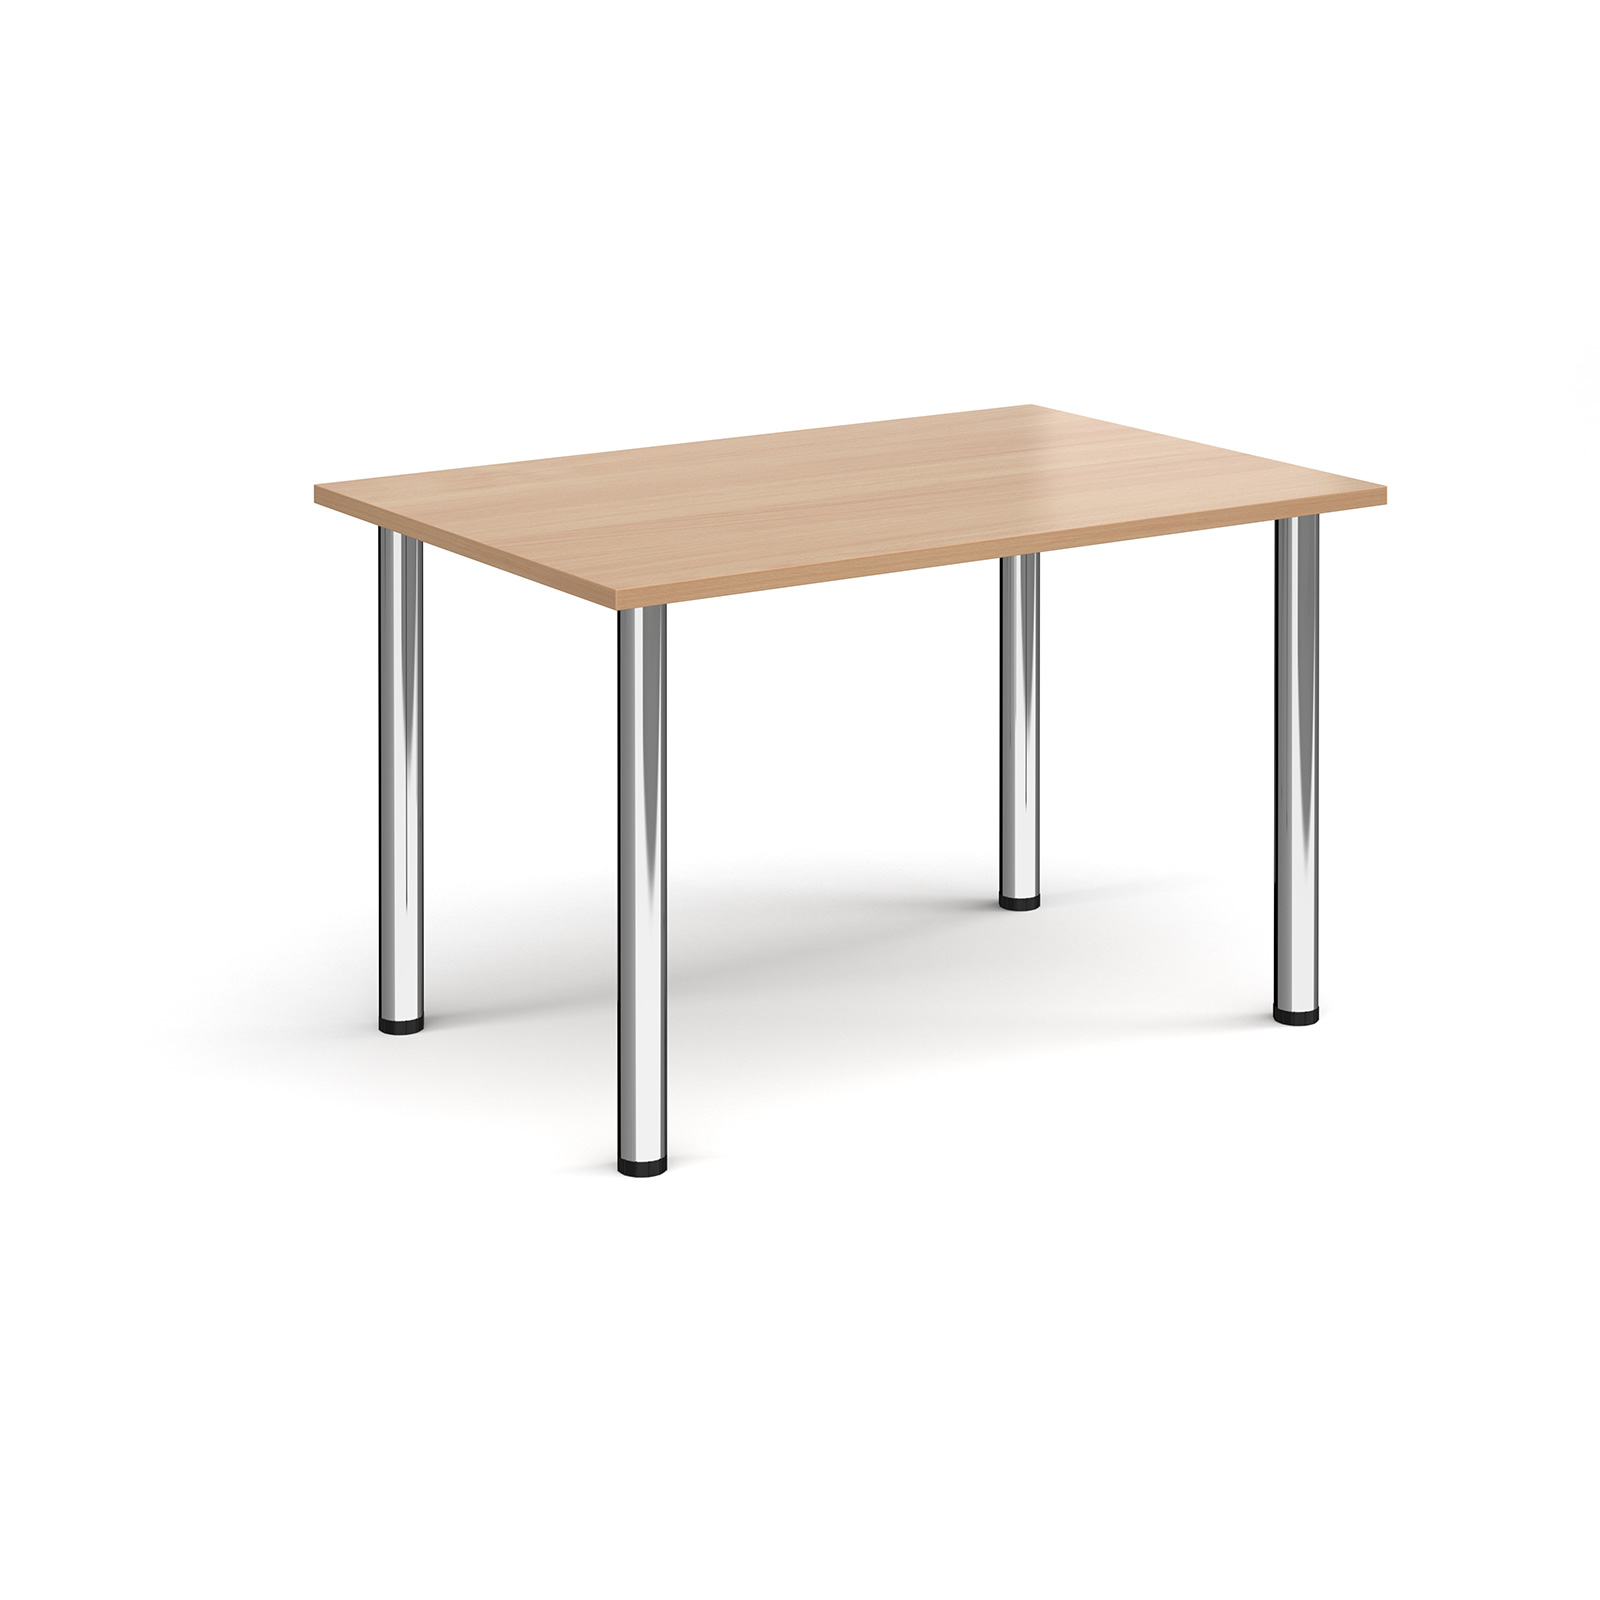 Boardroom / Meeting Rectangular radial leg meeting table